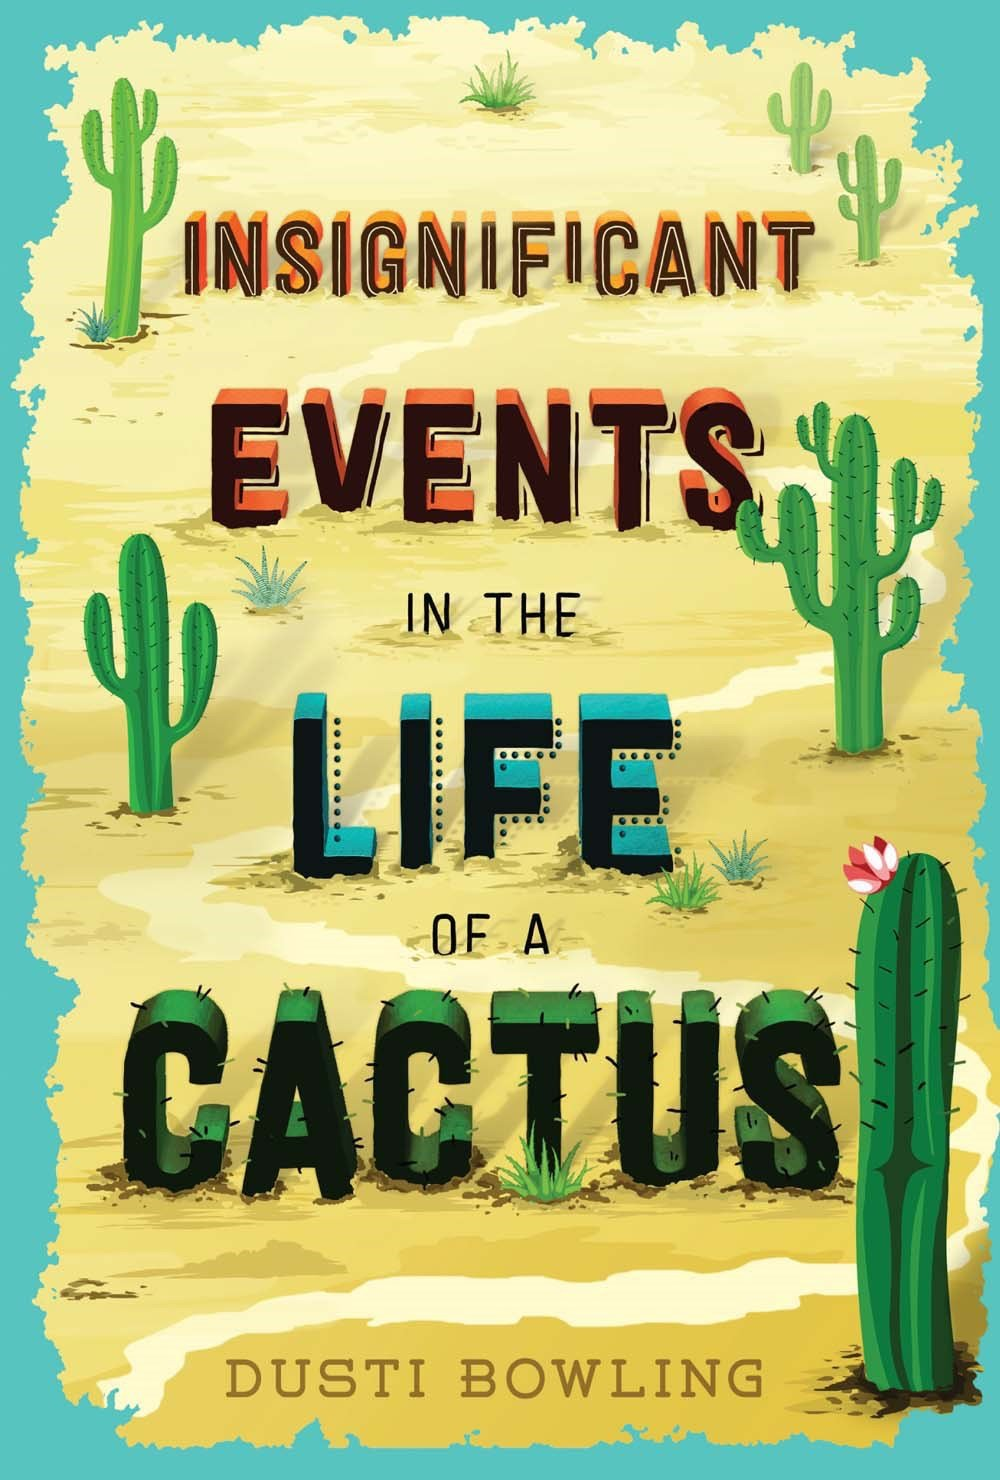 Tween Book Club: Insignificant Events in the Life of a Cactus